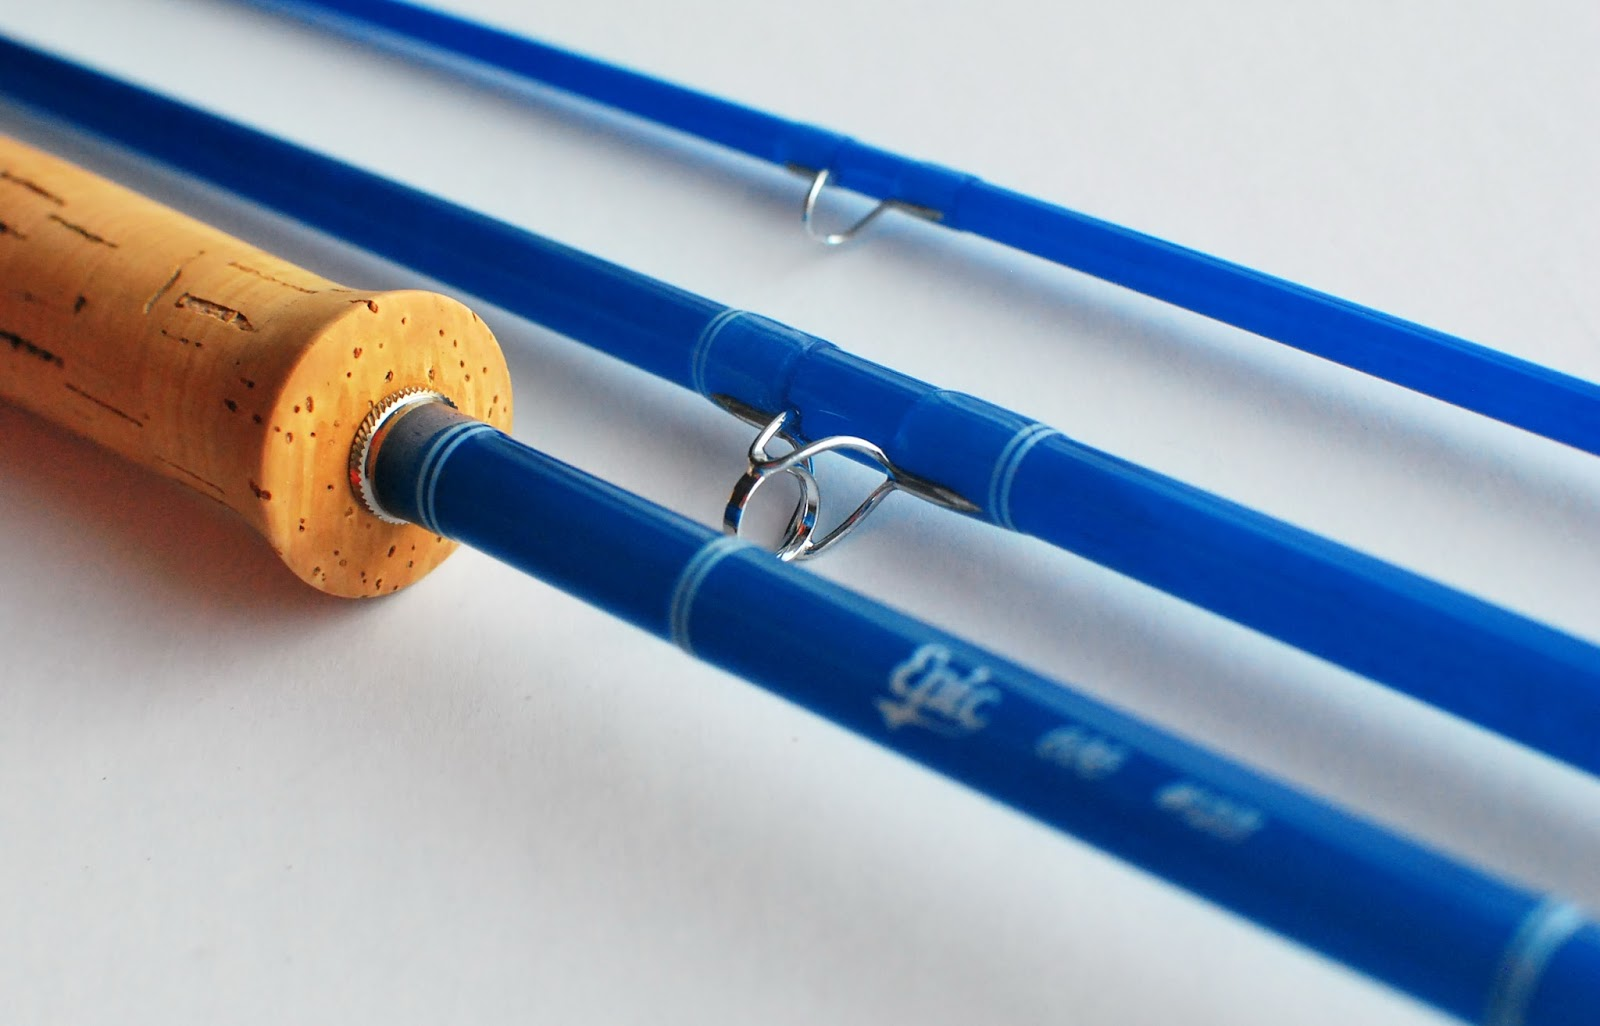 Handcrafted graphite and fiberglass fly rods swift epic for Halo fishing rods